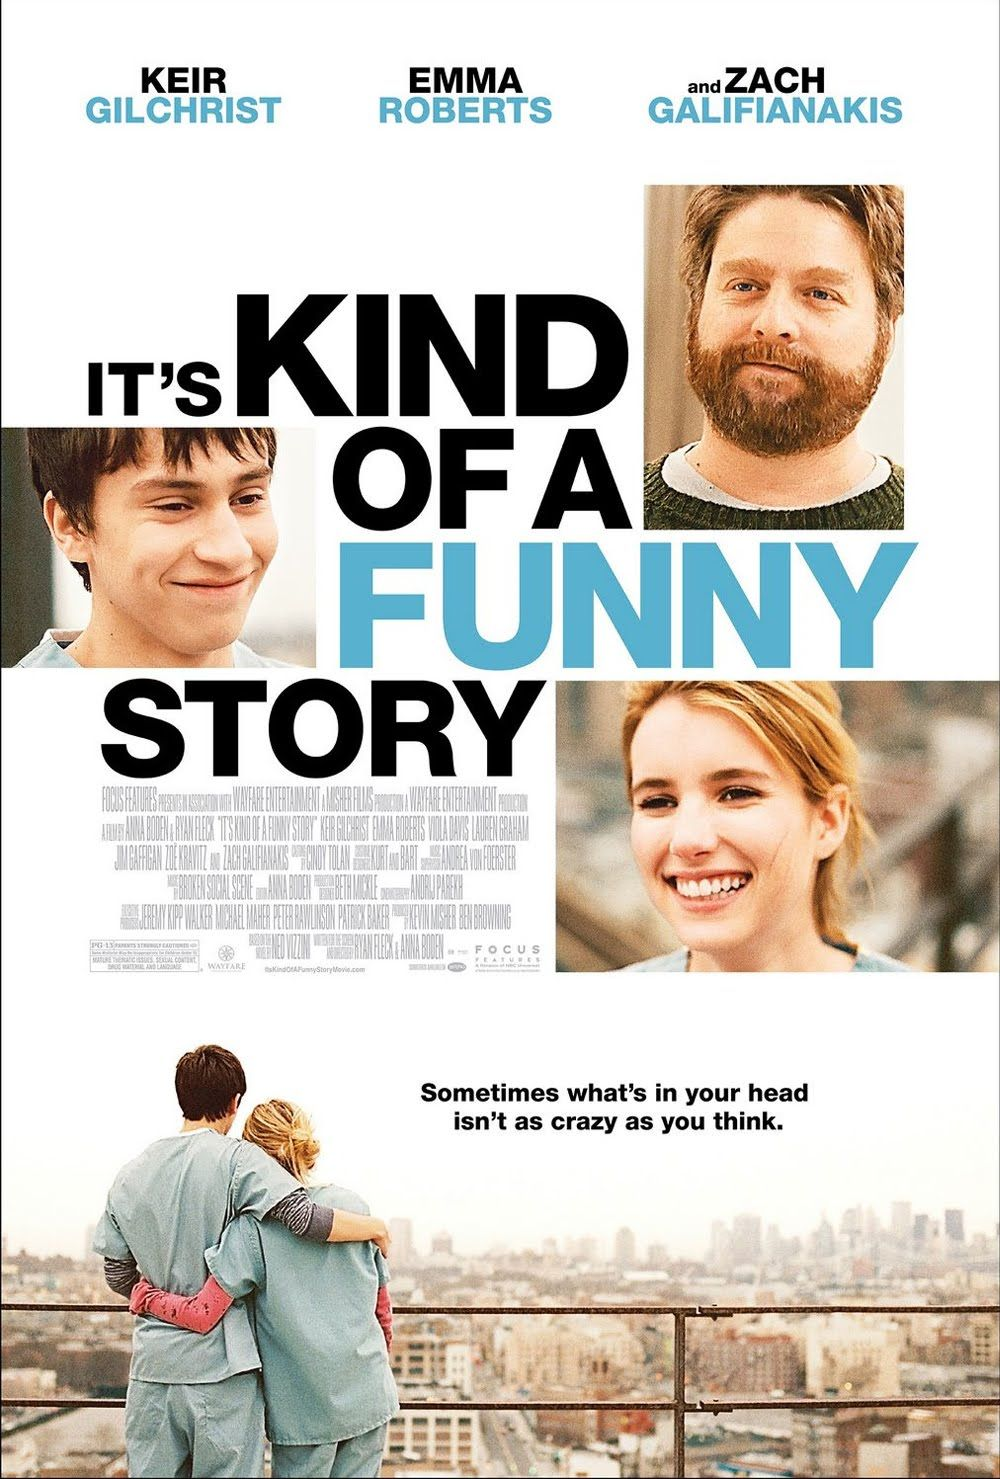 It's Kind of a Funny Story(2010) -Keir Gilchrist, Zach Galifianakis, Emma Roberts